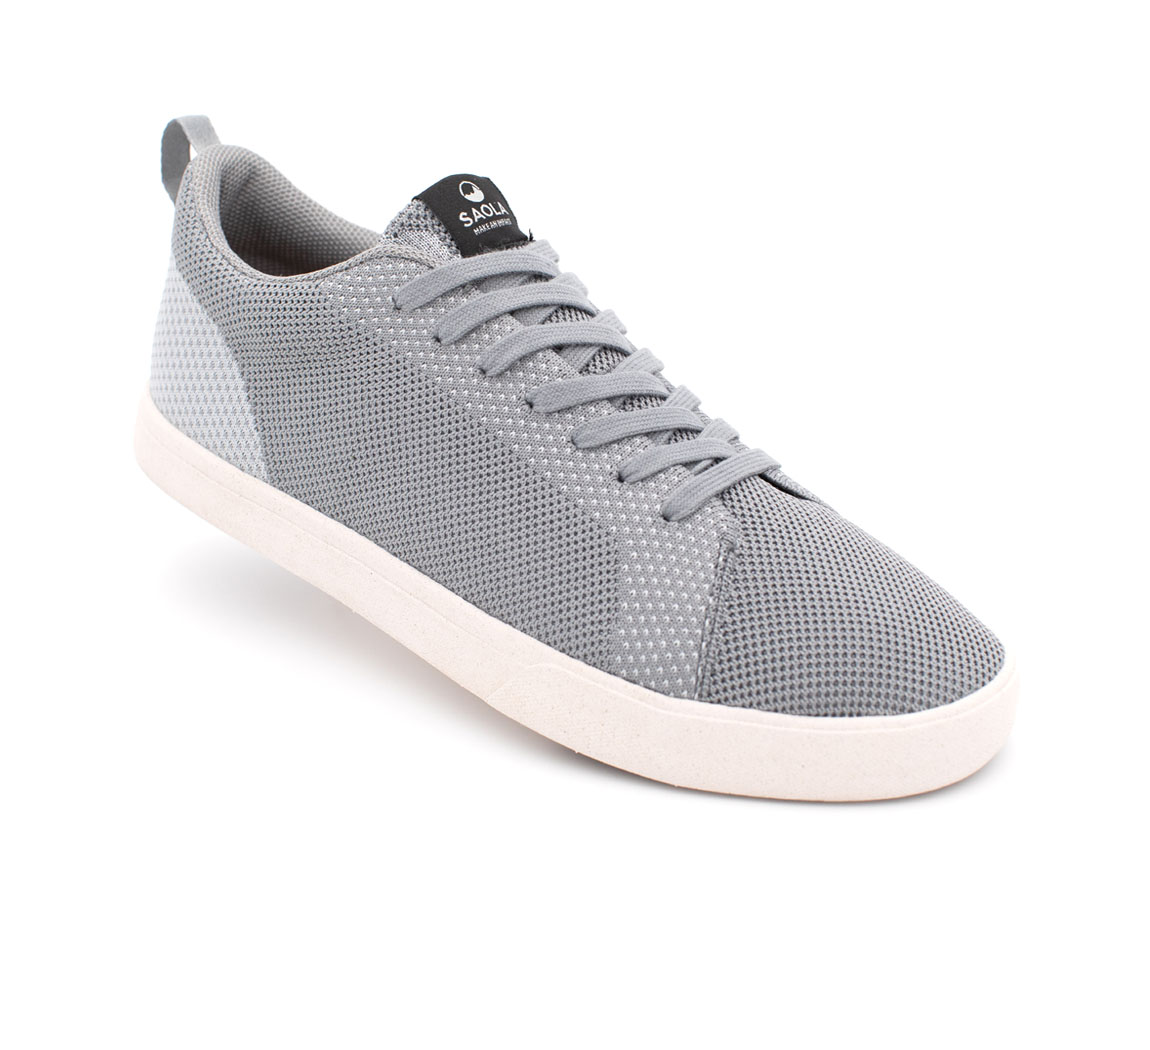 Chaussure homme Cannon Knit